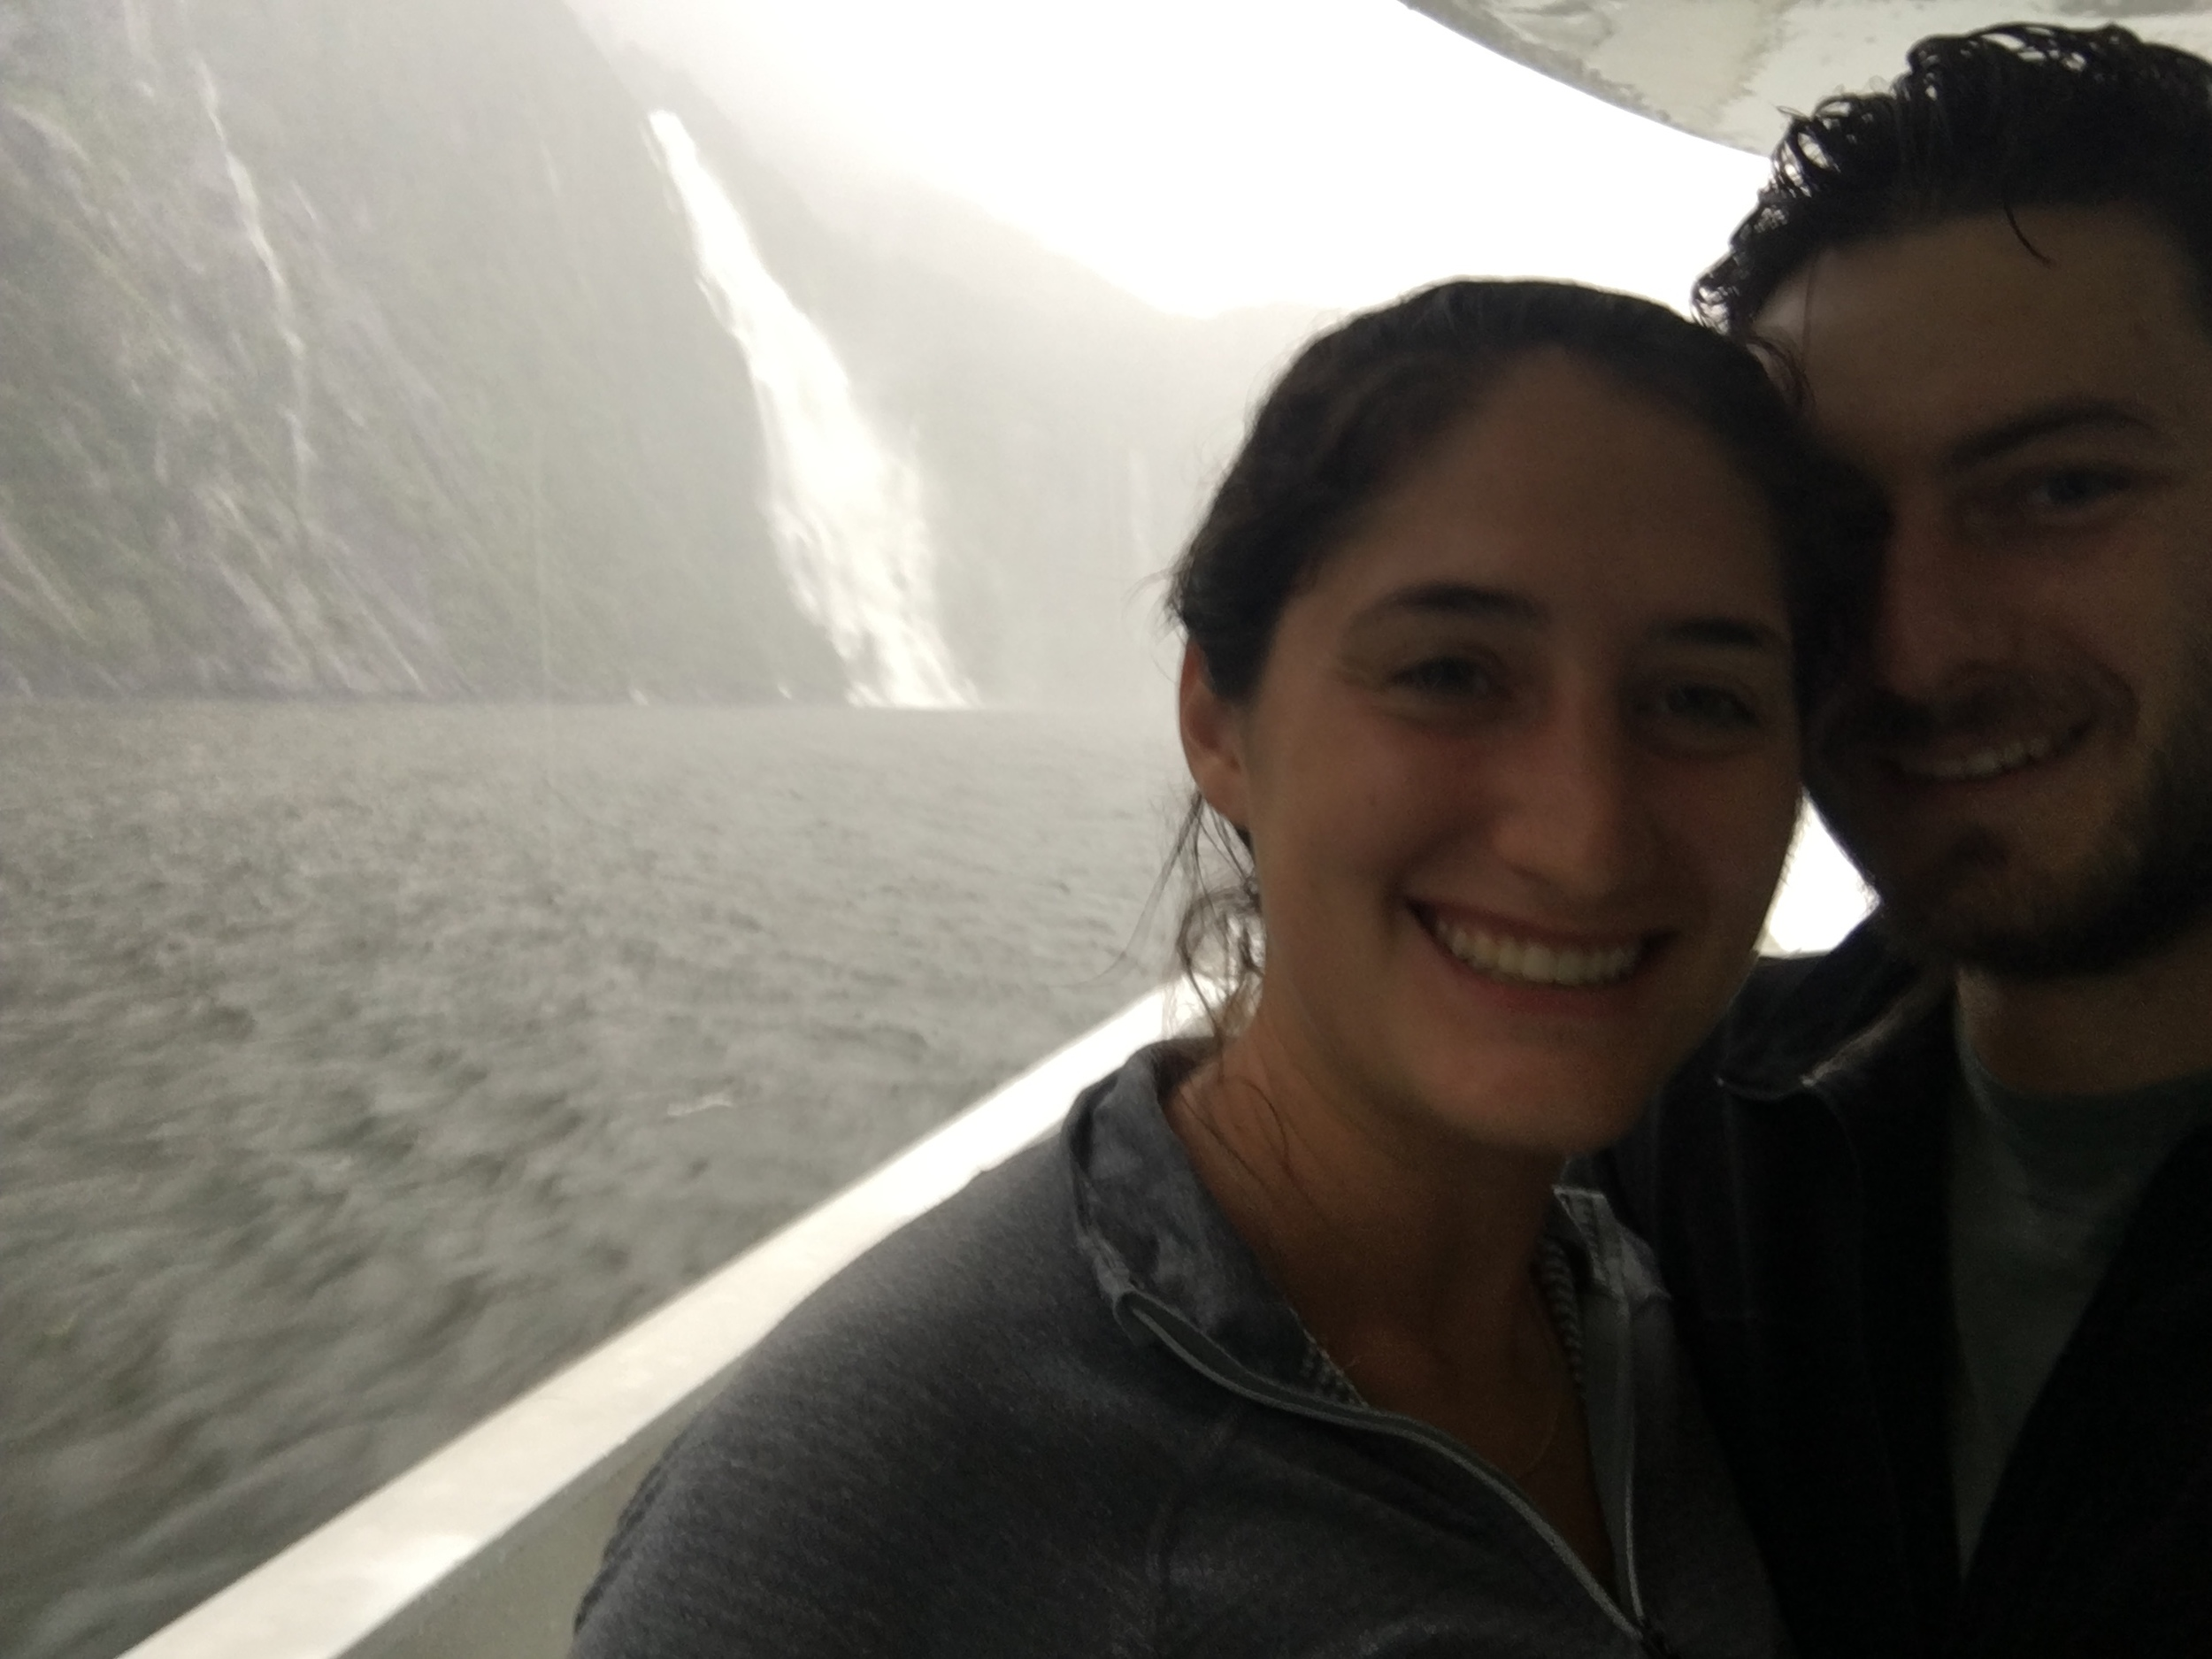 Soaked, but lucky to see all the waterfalls that occur only when it rains